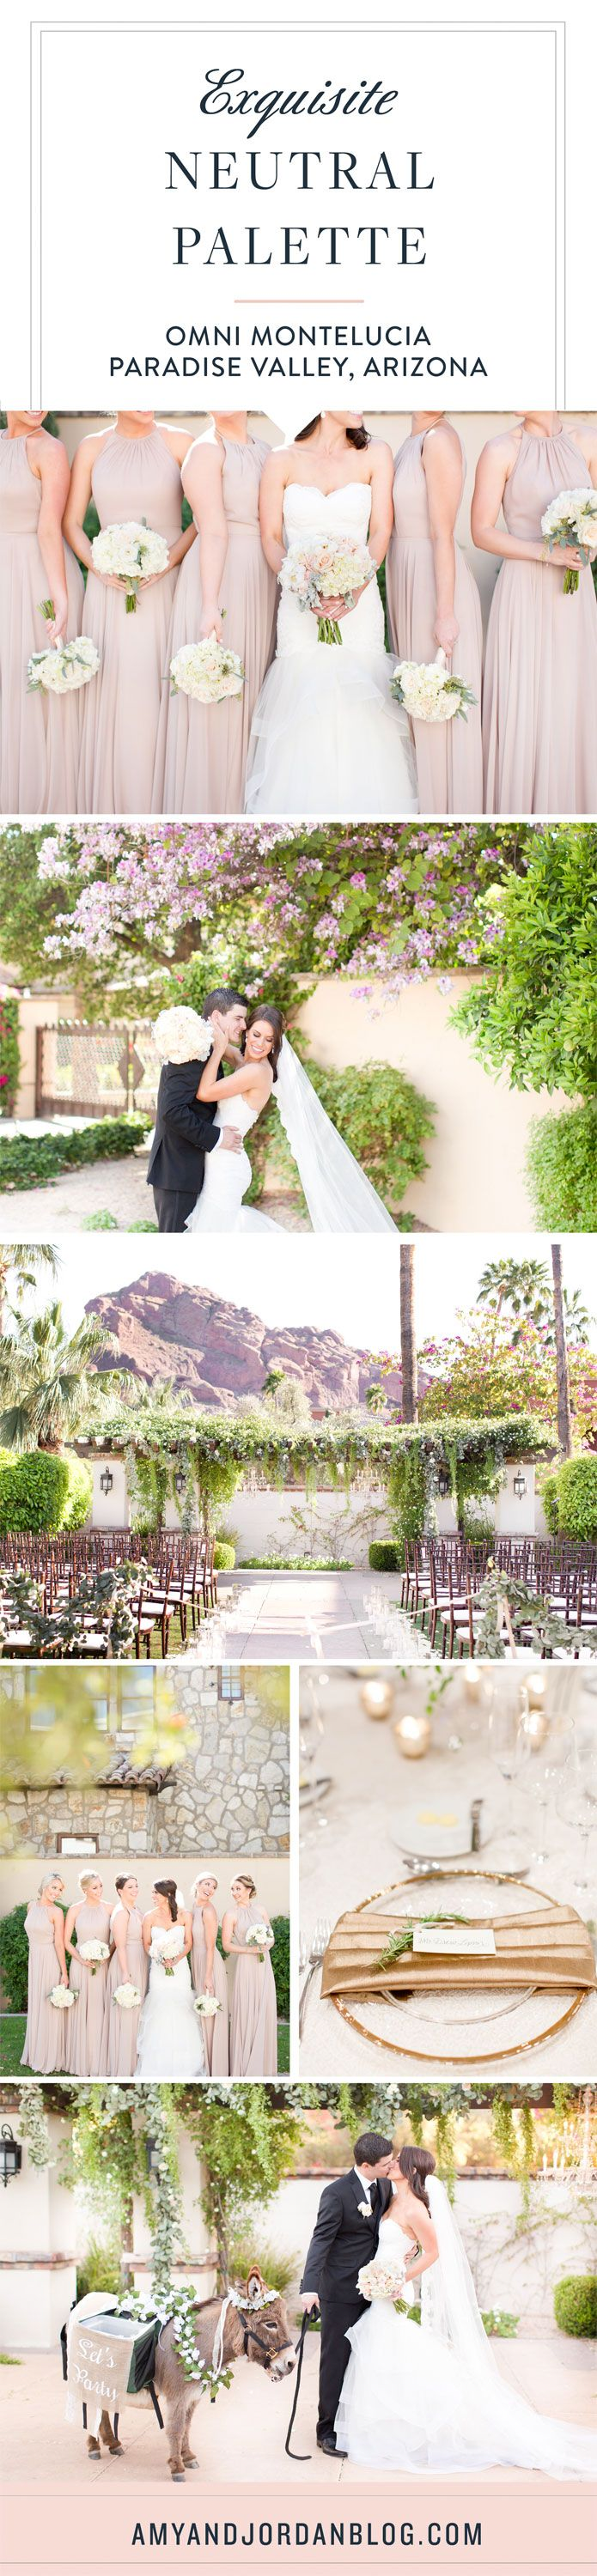 Exquisite neutral palette wedding at the stunning Montelucia resort in Paradise Valley, Arizona.